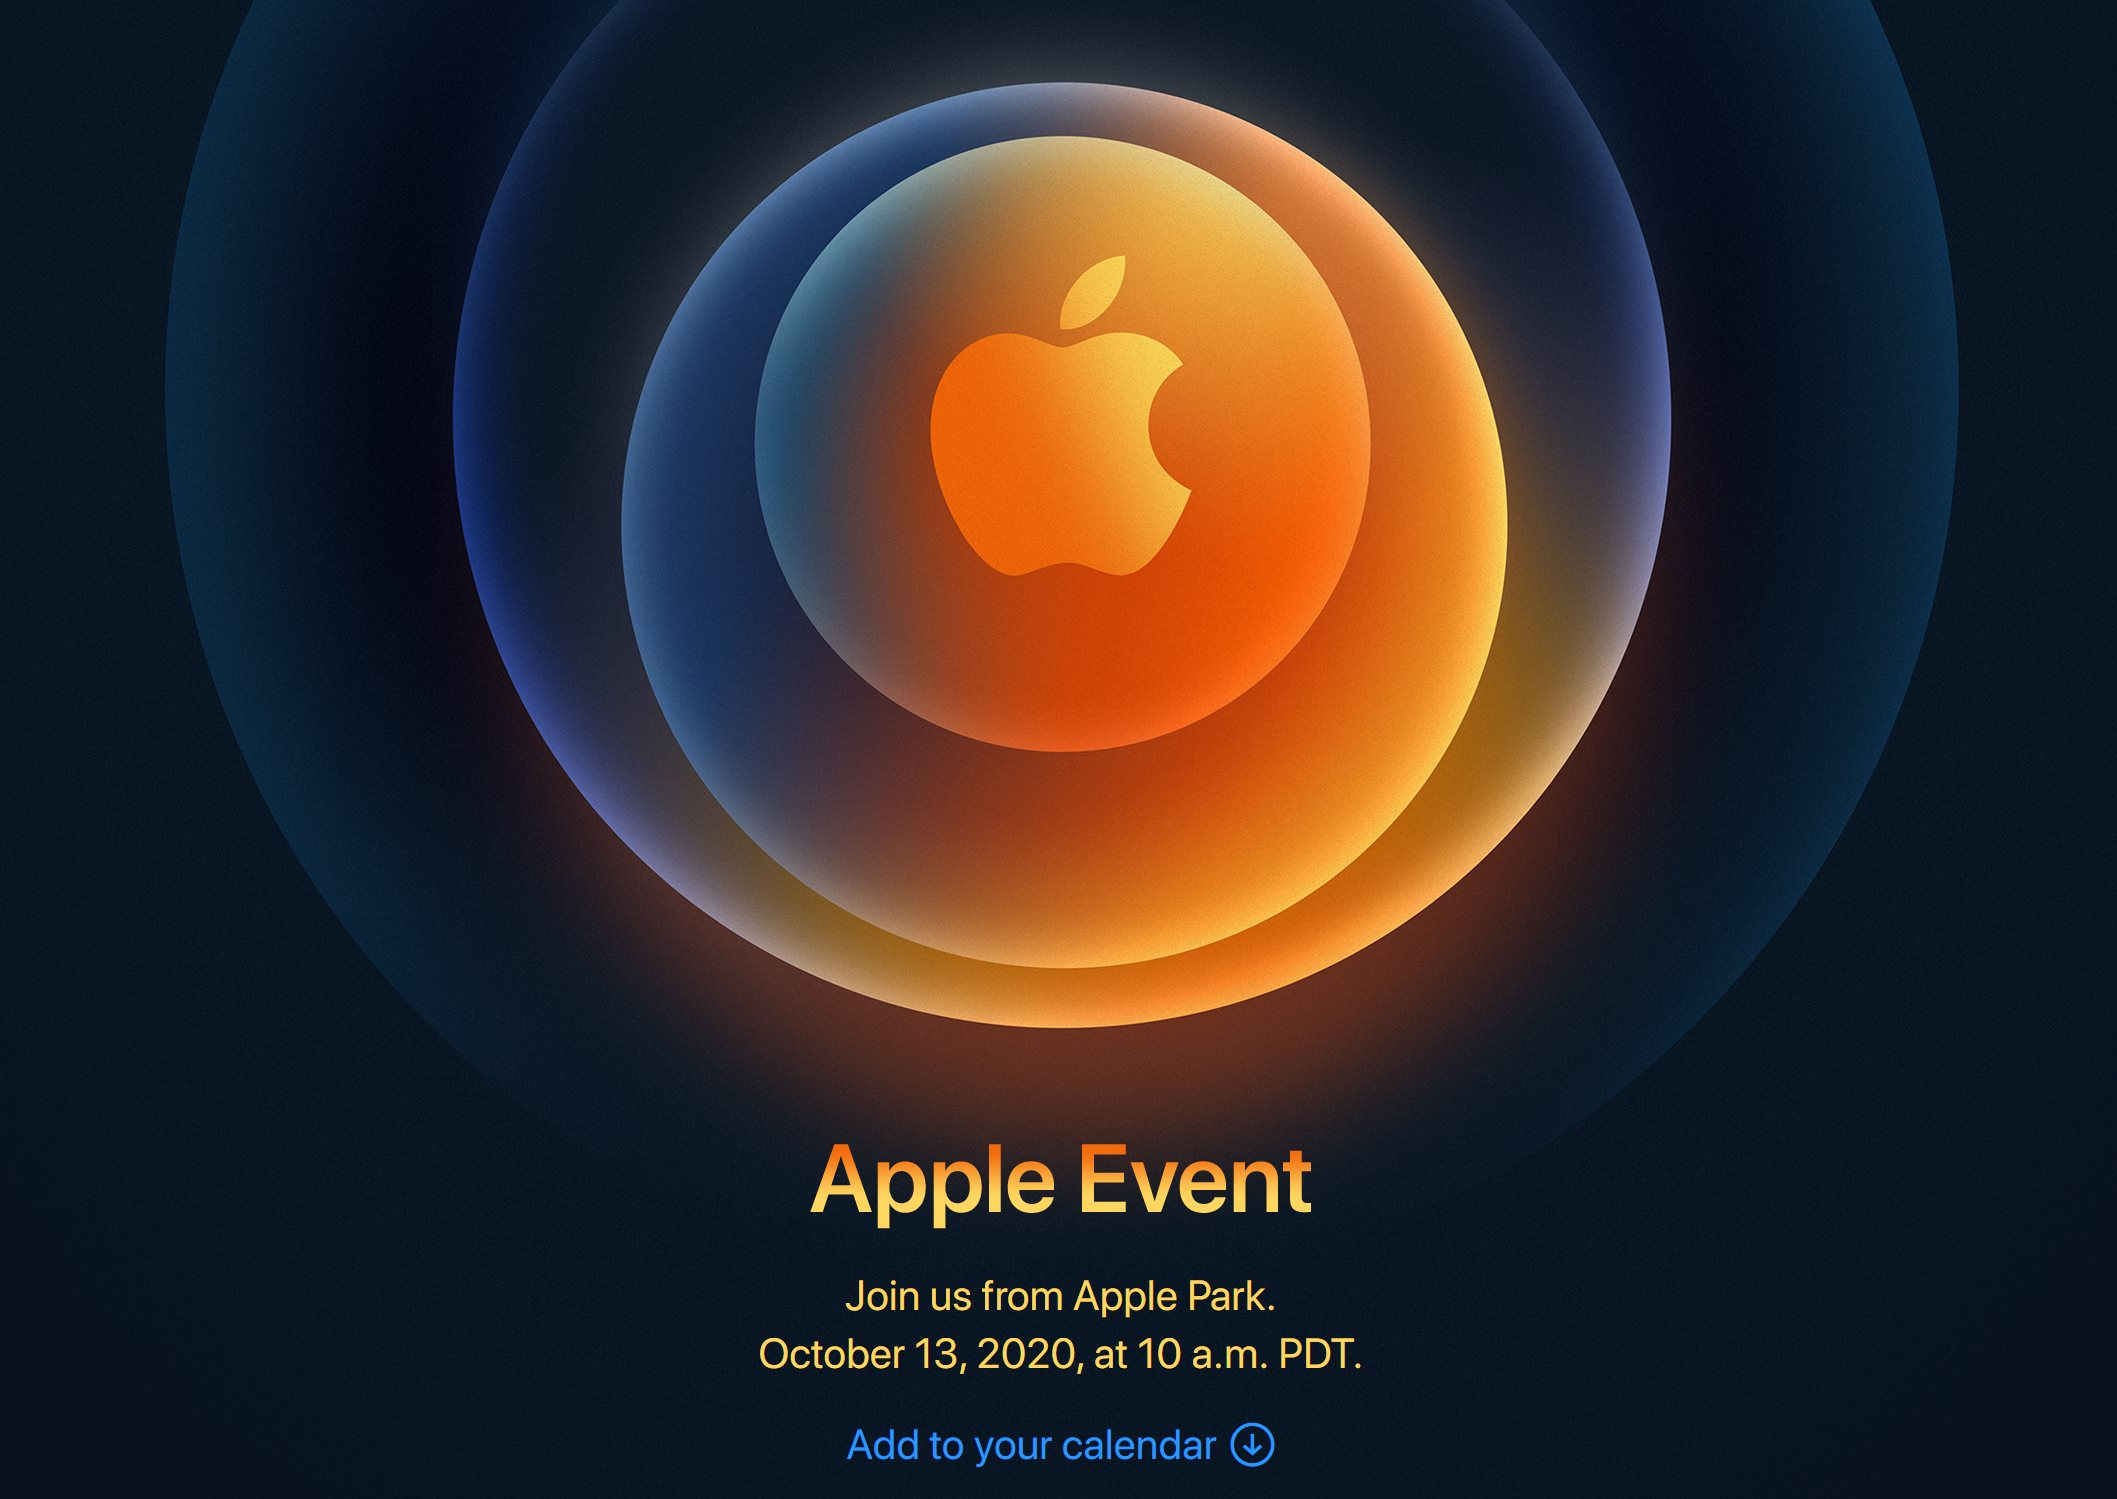 Apple confirms iPhone 12 event, October 13